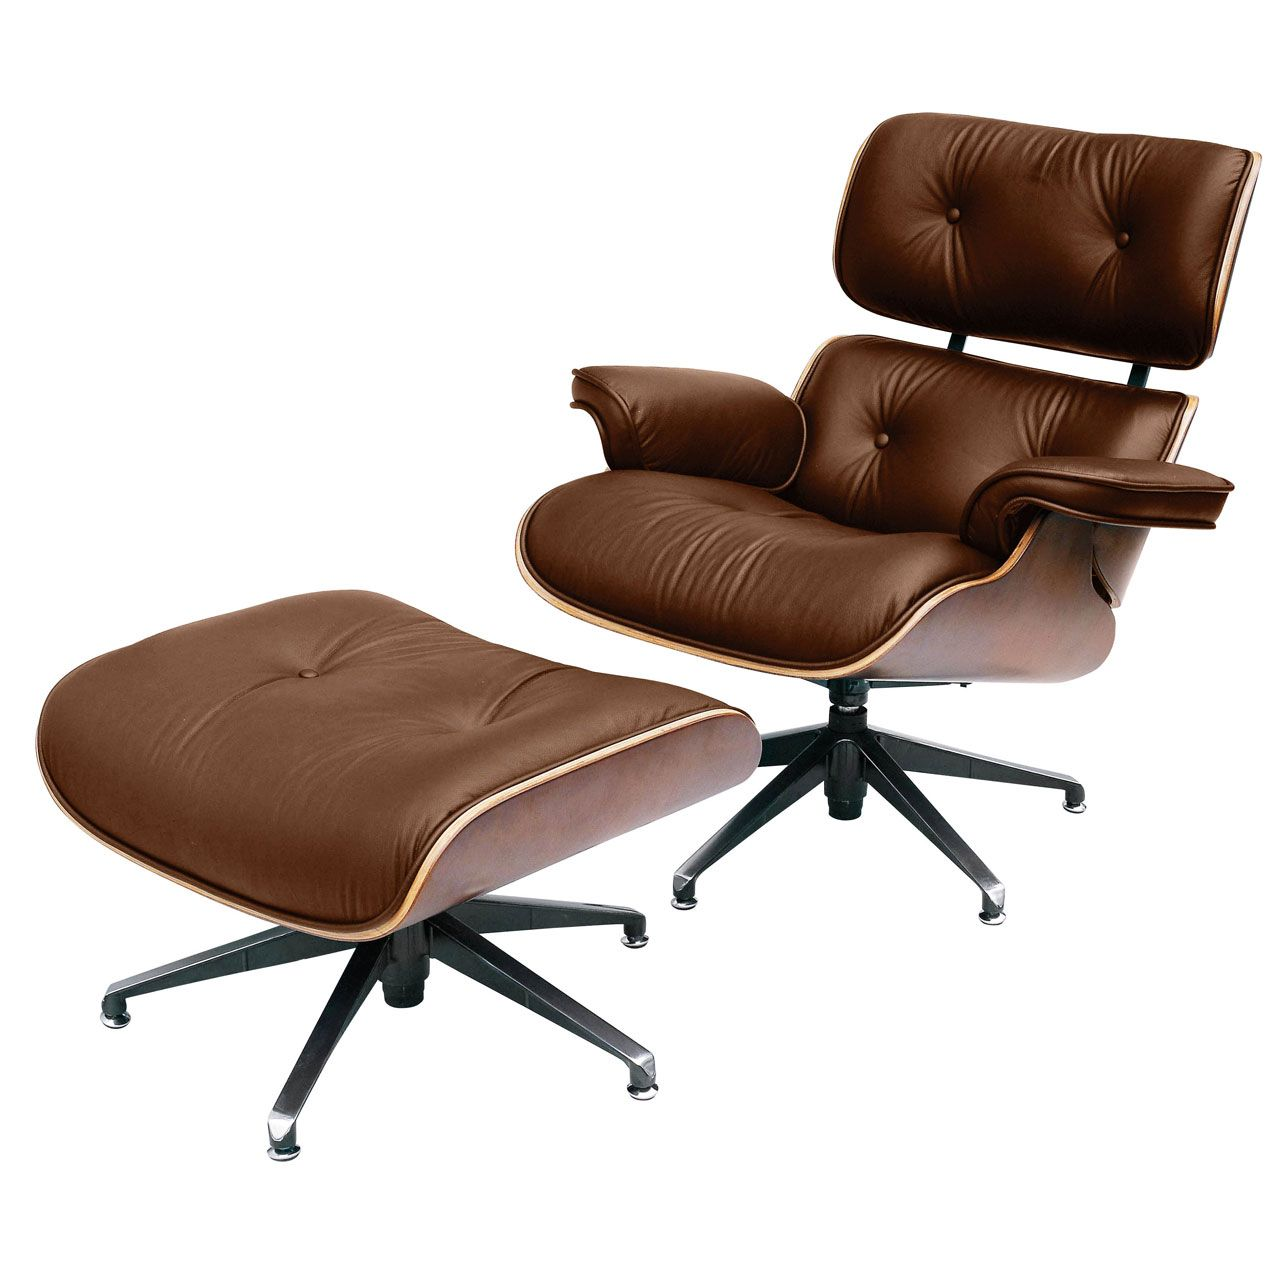 The perfect home office or home library chair. Grab a book, sit back and .  This iconic lounge chair has a 15 degree recline ...